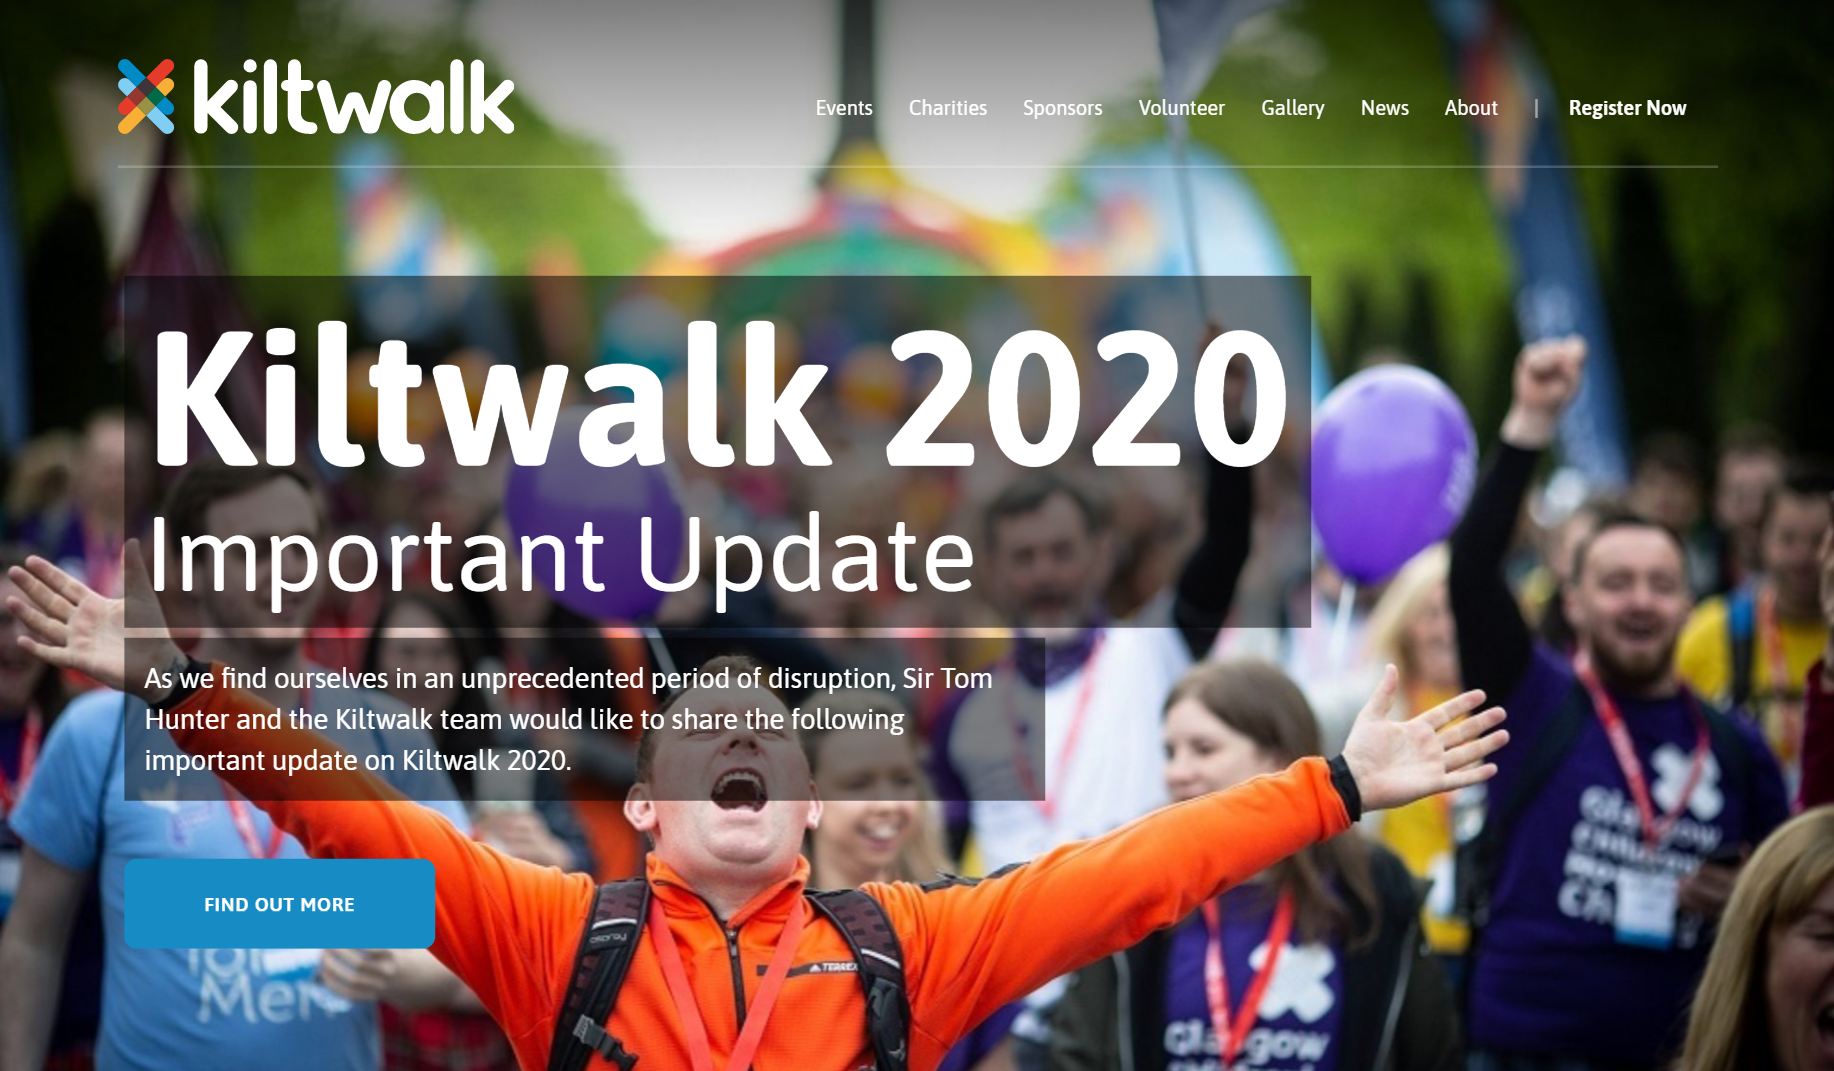 kiltwalk-homepage-cheer